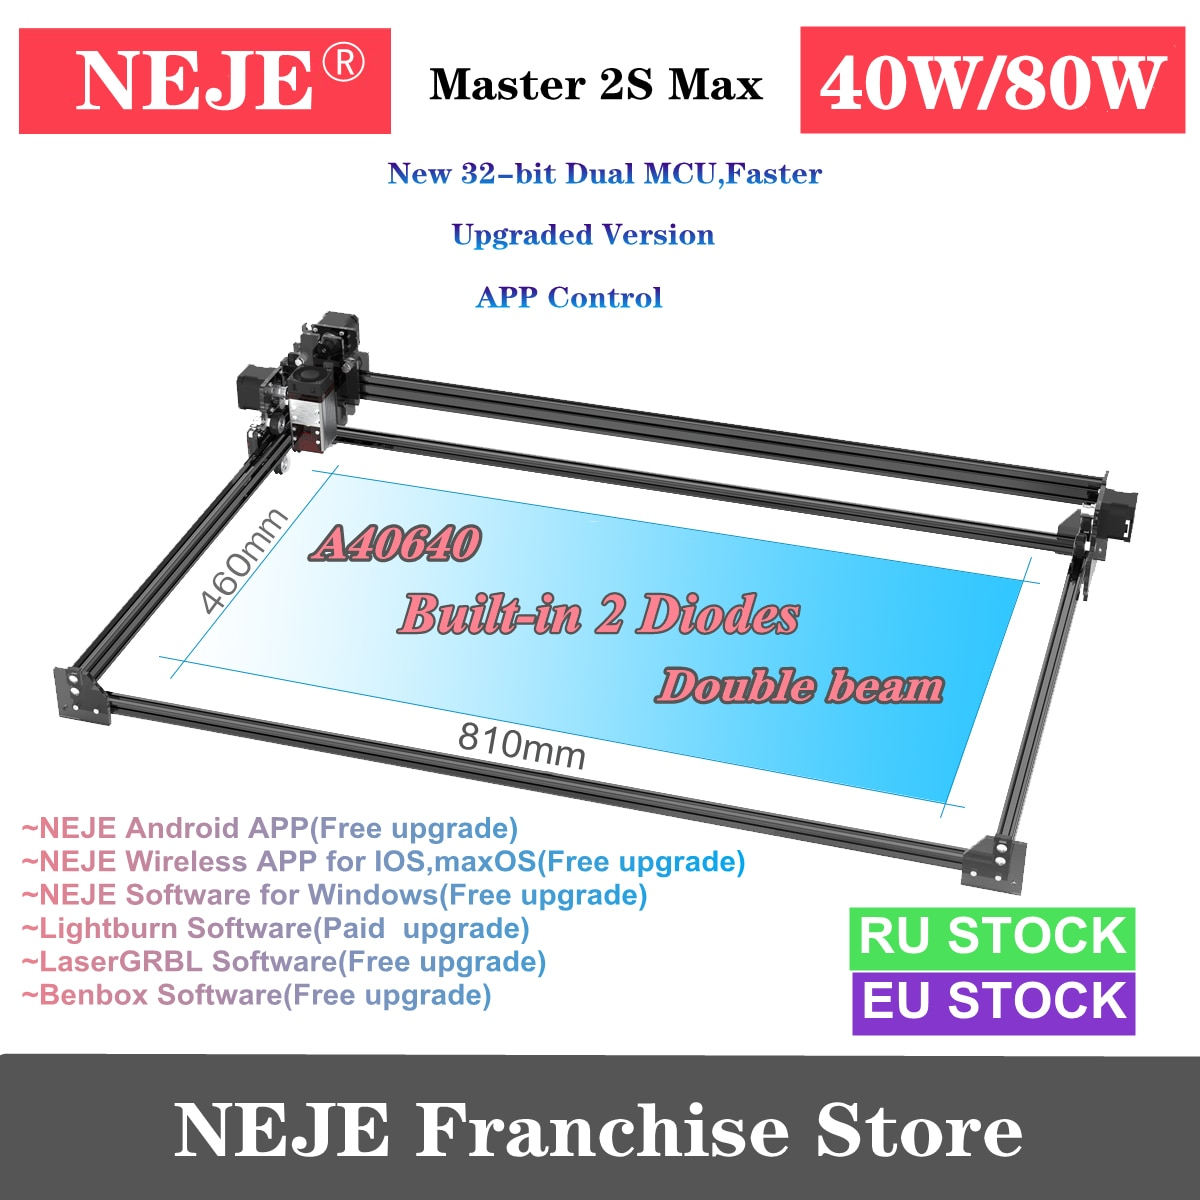 NEJE Master 2S Max 80W/40W CNC Laser Engraver Cutter Wood Cutting Engraving Machine with 2 Diodes Bluetooth -Lightburn-LaserGRBL neje master 2s max 80w cnc double beam laser engraver cutter engraving cutting machine bluetooth lasergrbl lightburn 460x810mm